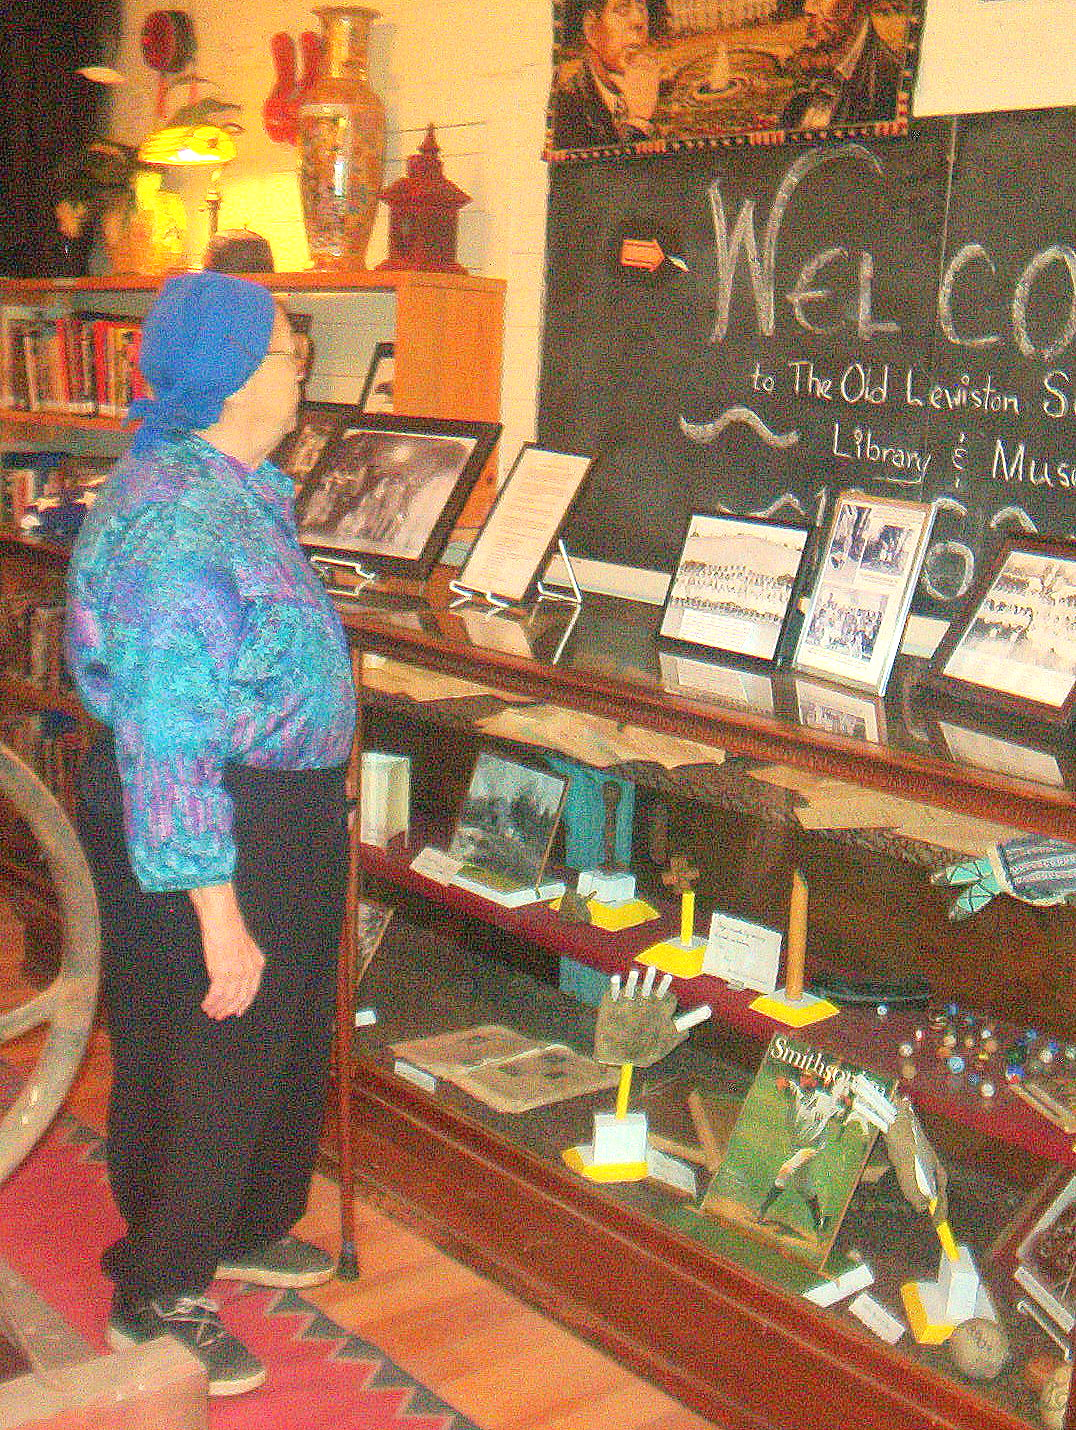 Schoolhouse founder, Doris Callahan, oversees relics in the historical museum that once belonged to her grandfather, from his time as a student